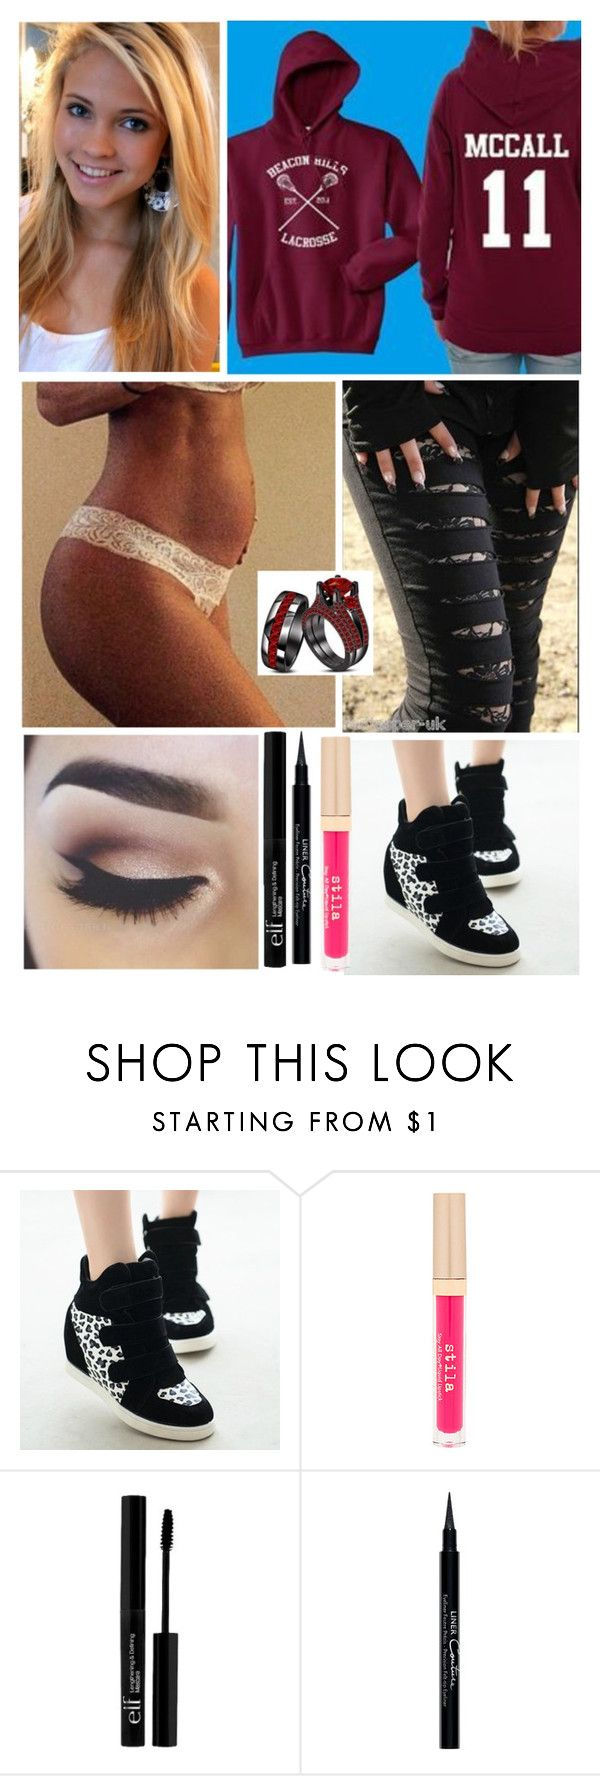 """""""First Ultrasound"""" by ashleynicoleblack ❤ liked on Polyvore featuring Poizen Industries, Stila, e.l.f. and Givenchy"""